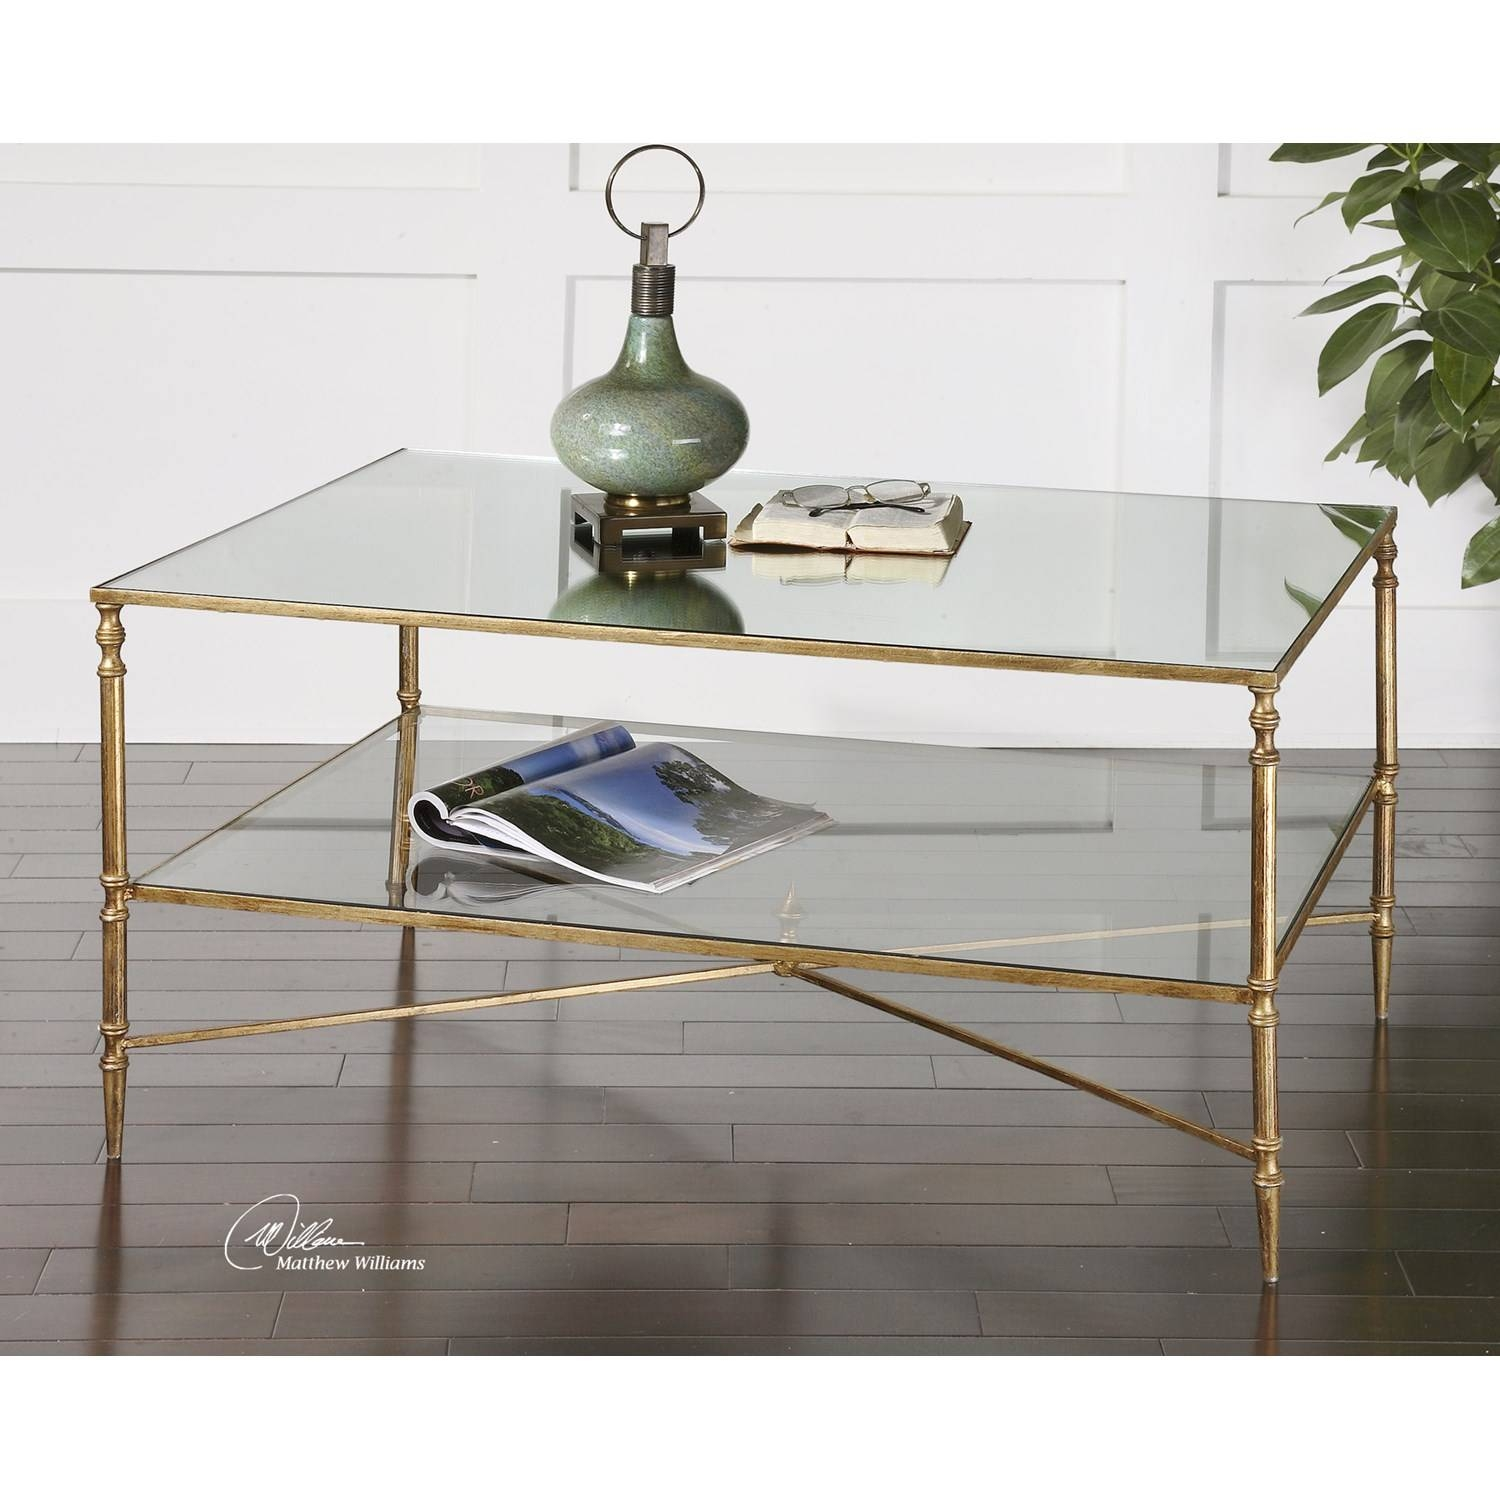 Uttermost Henzler Mirrored Glass Coffee Table - 24276 | The Simple with Mirror Glass Coffee Table (Image 14 of 15)